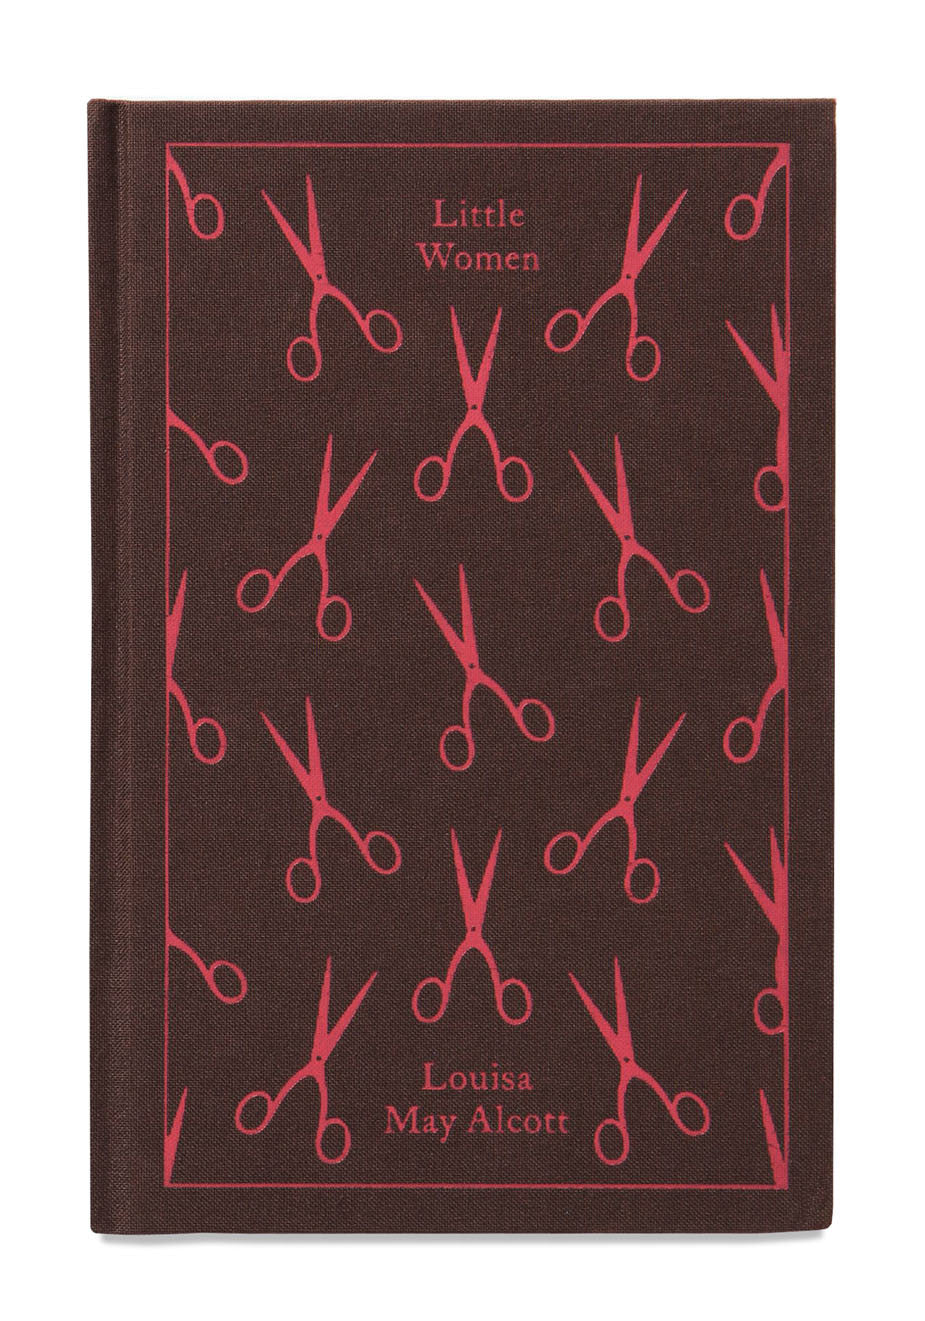 little women by louisa may alcott - www.mignonshop.com - 1